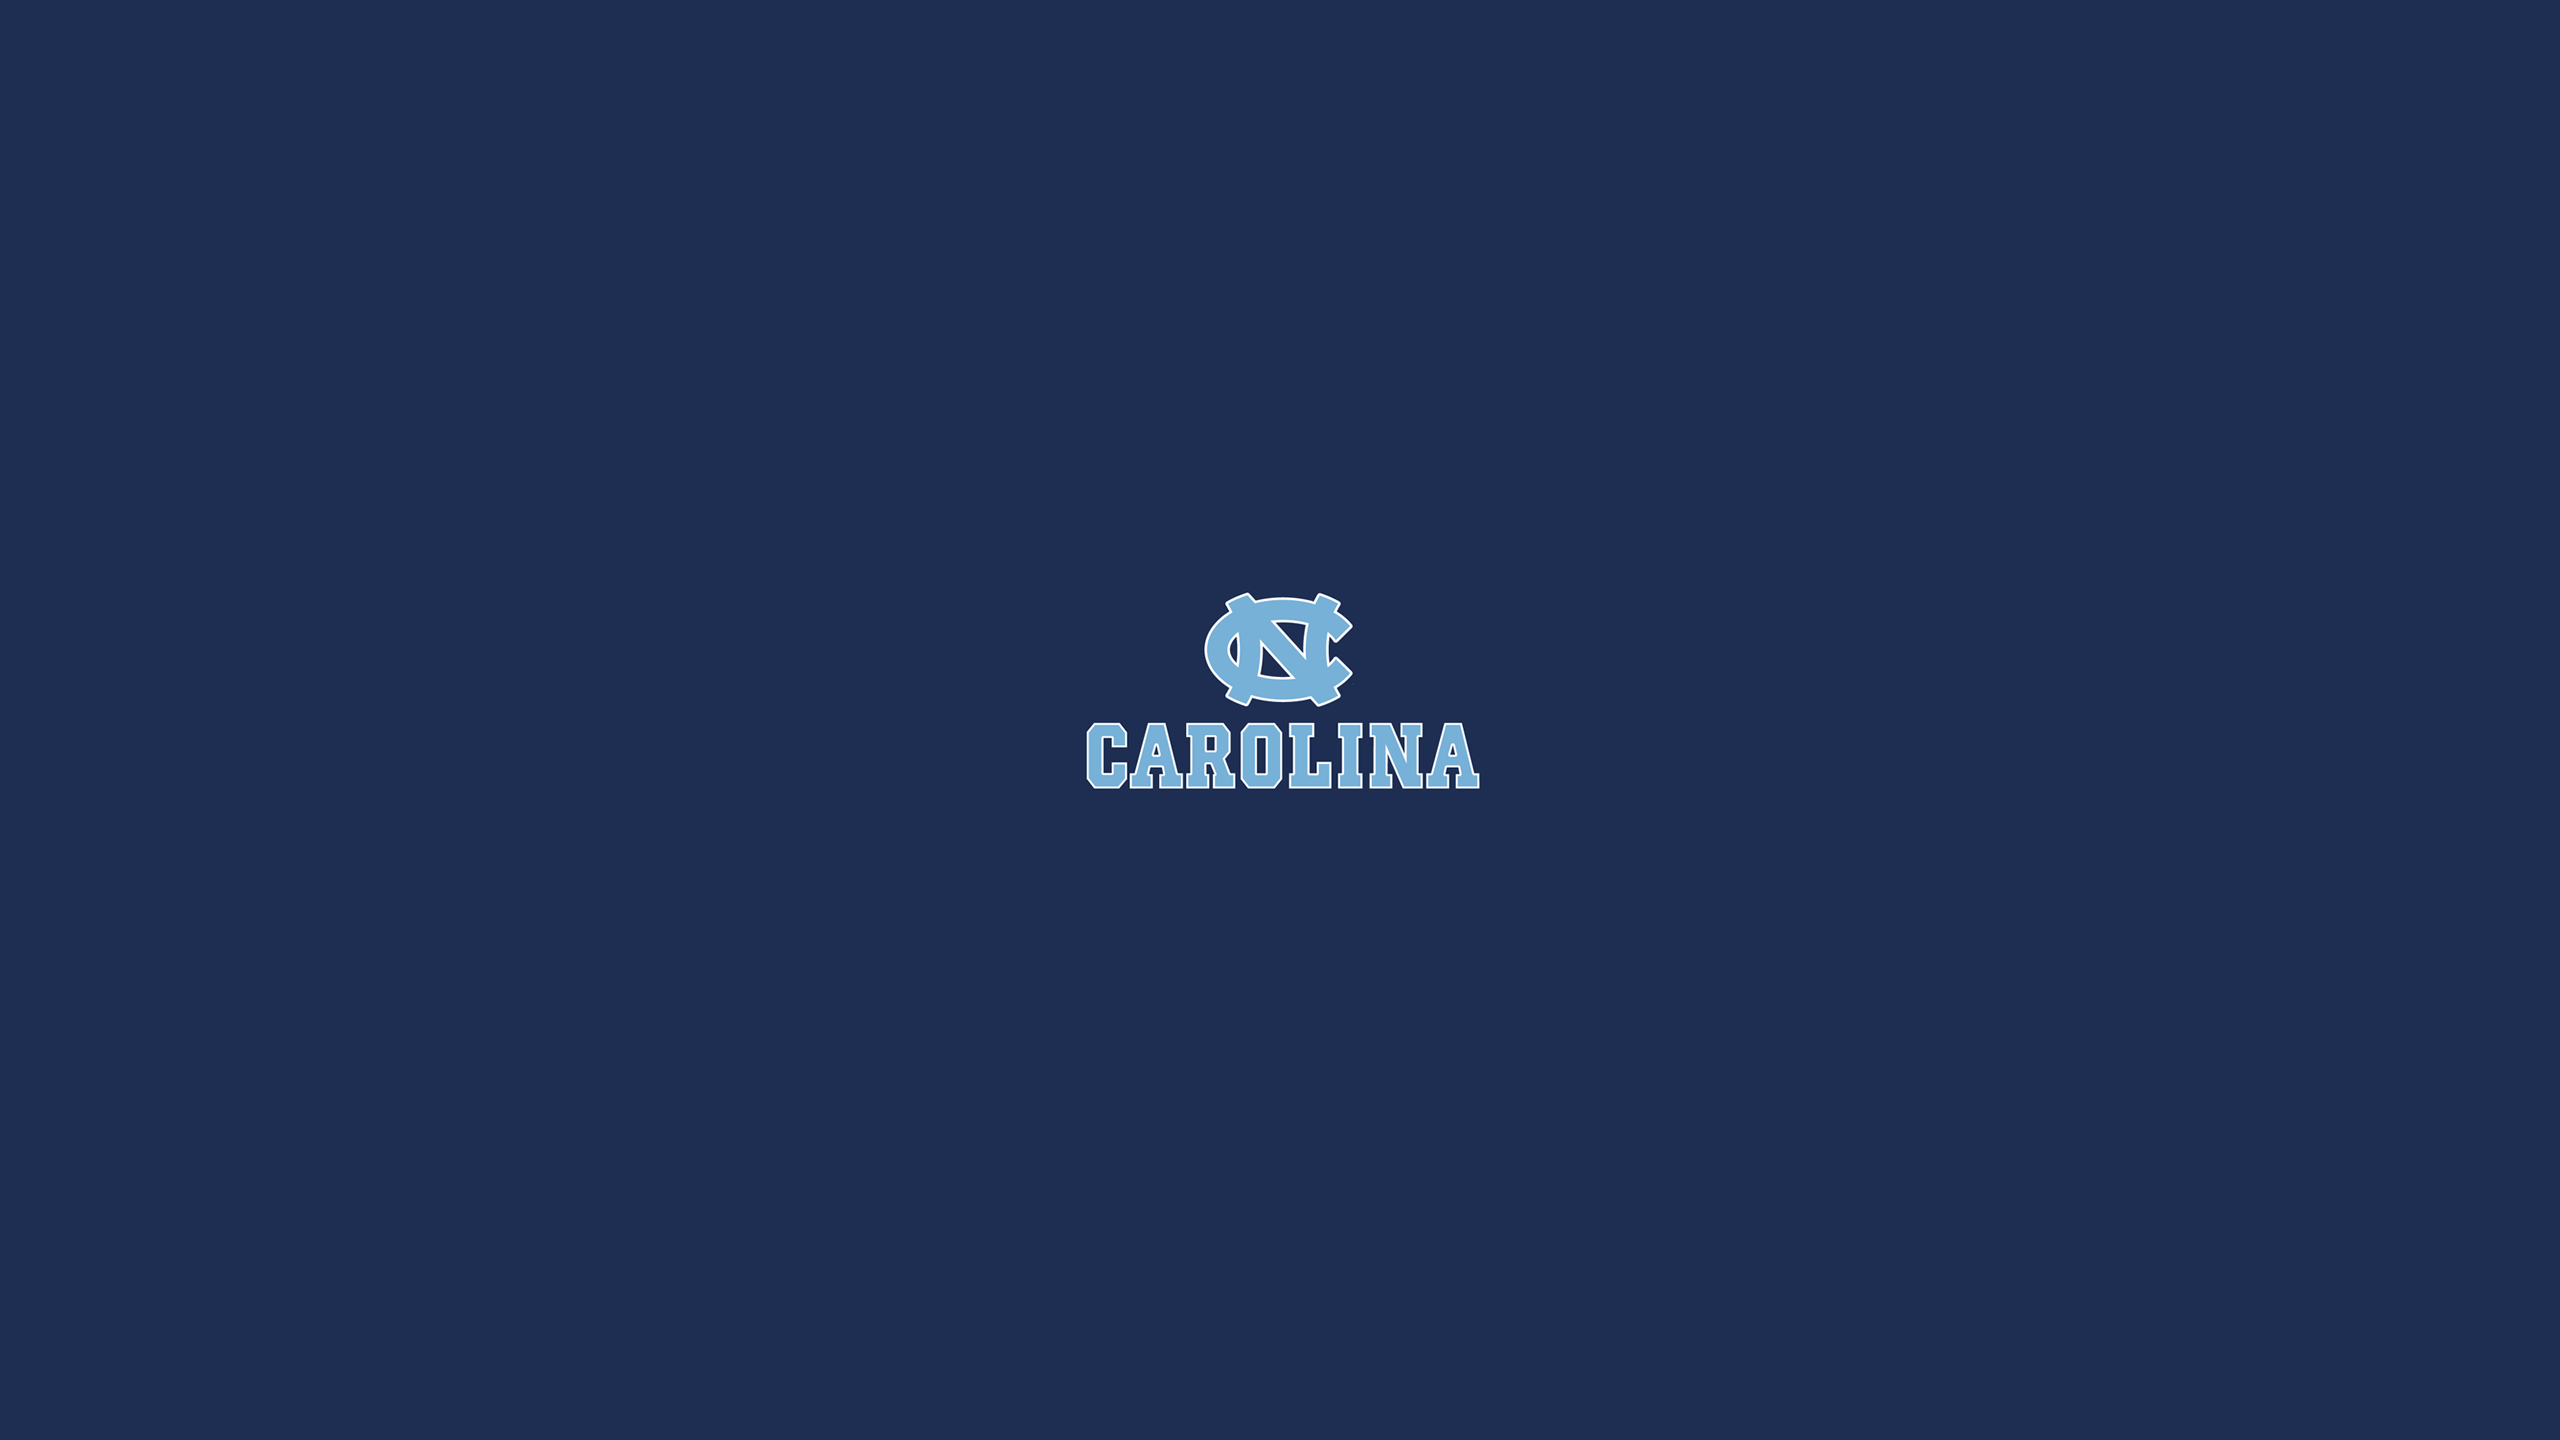 University of North Carolina Tar Heels